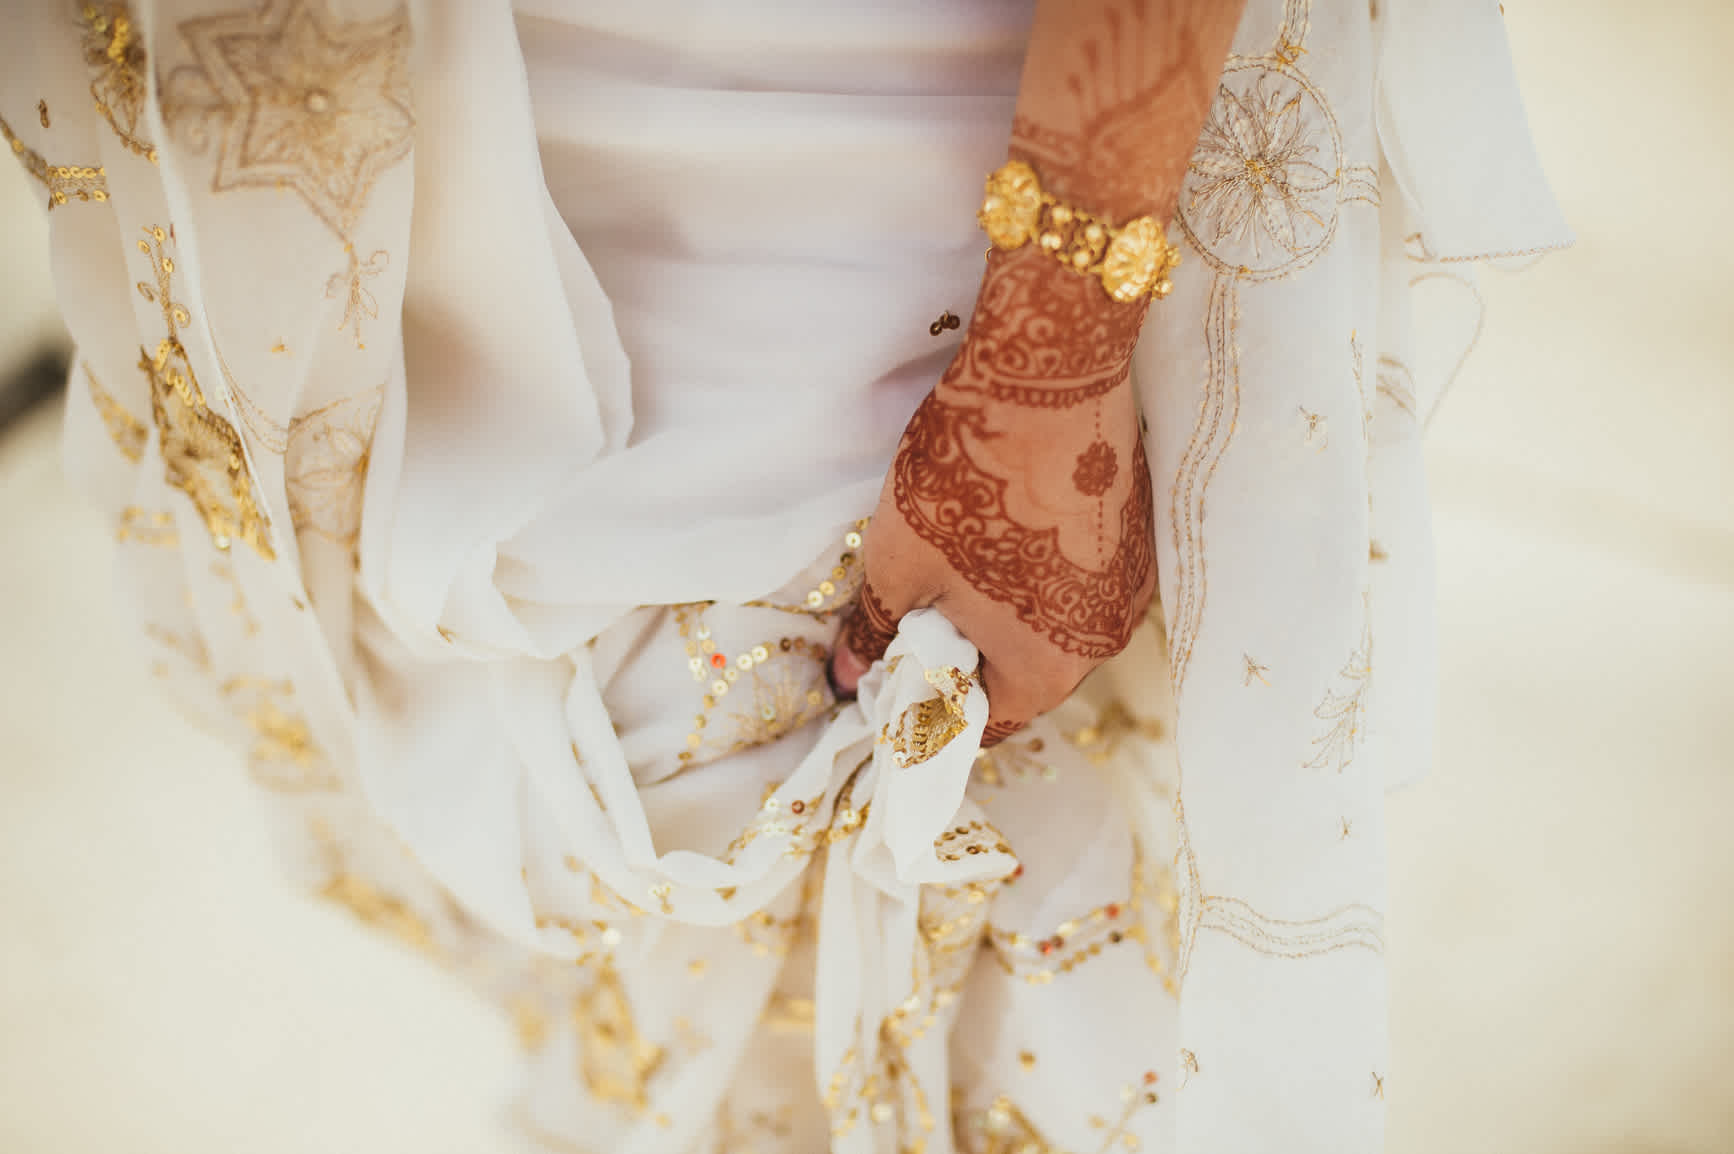 A close-up of a woman in a wedding dress with henna on their arm and hand.